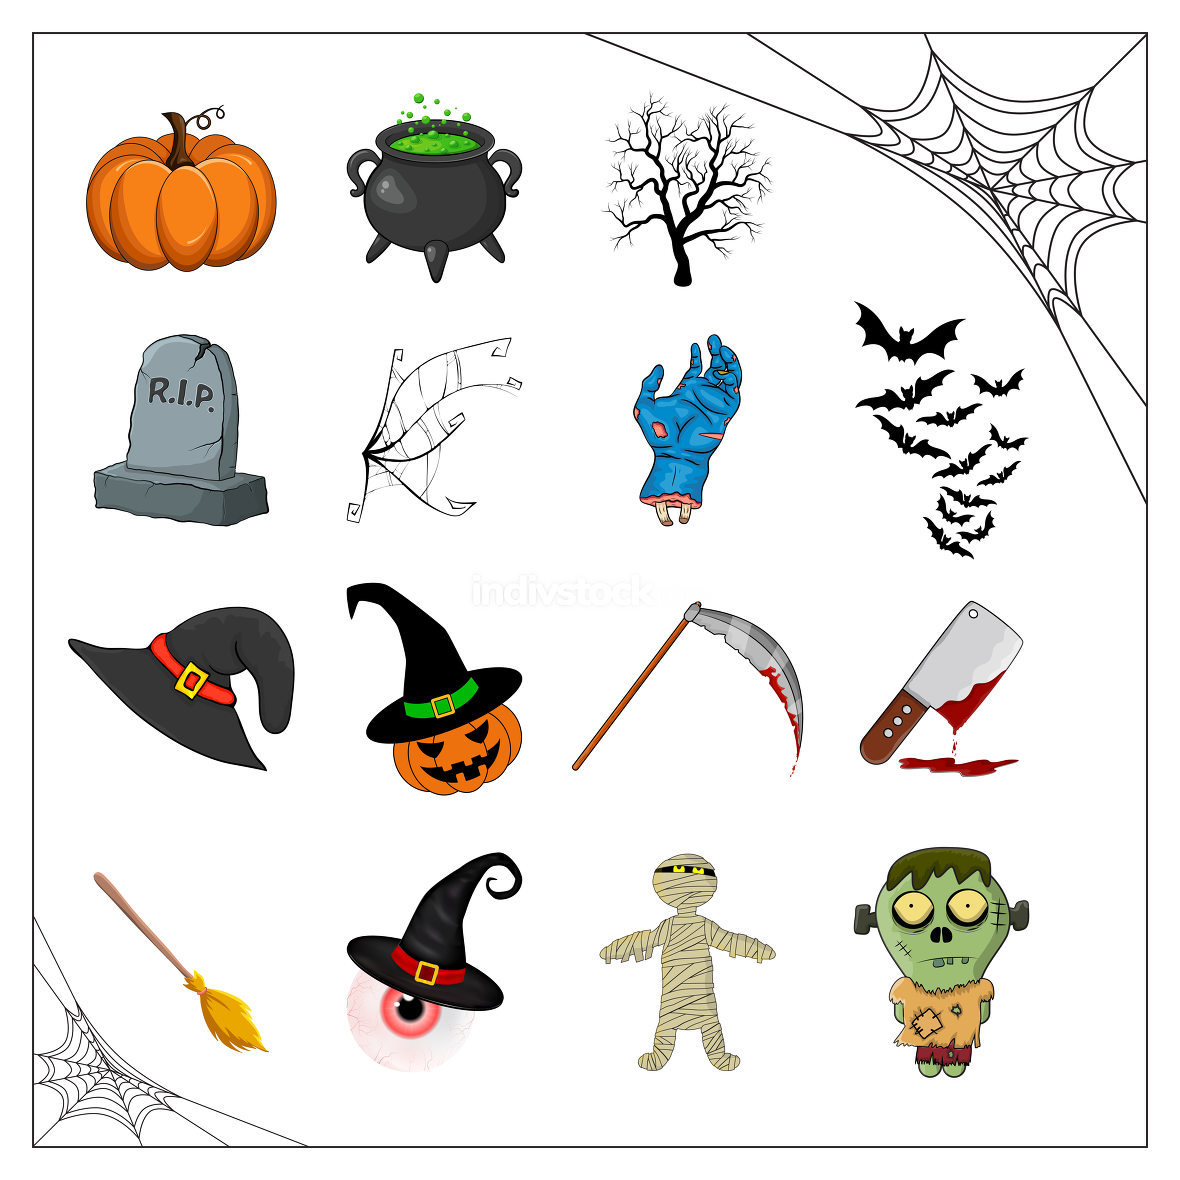 Halloween vector collection of spooky illustration isolated on white. Cartoon symbols for creepy holiday celebration